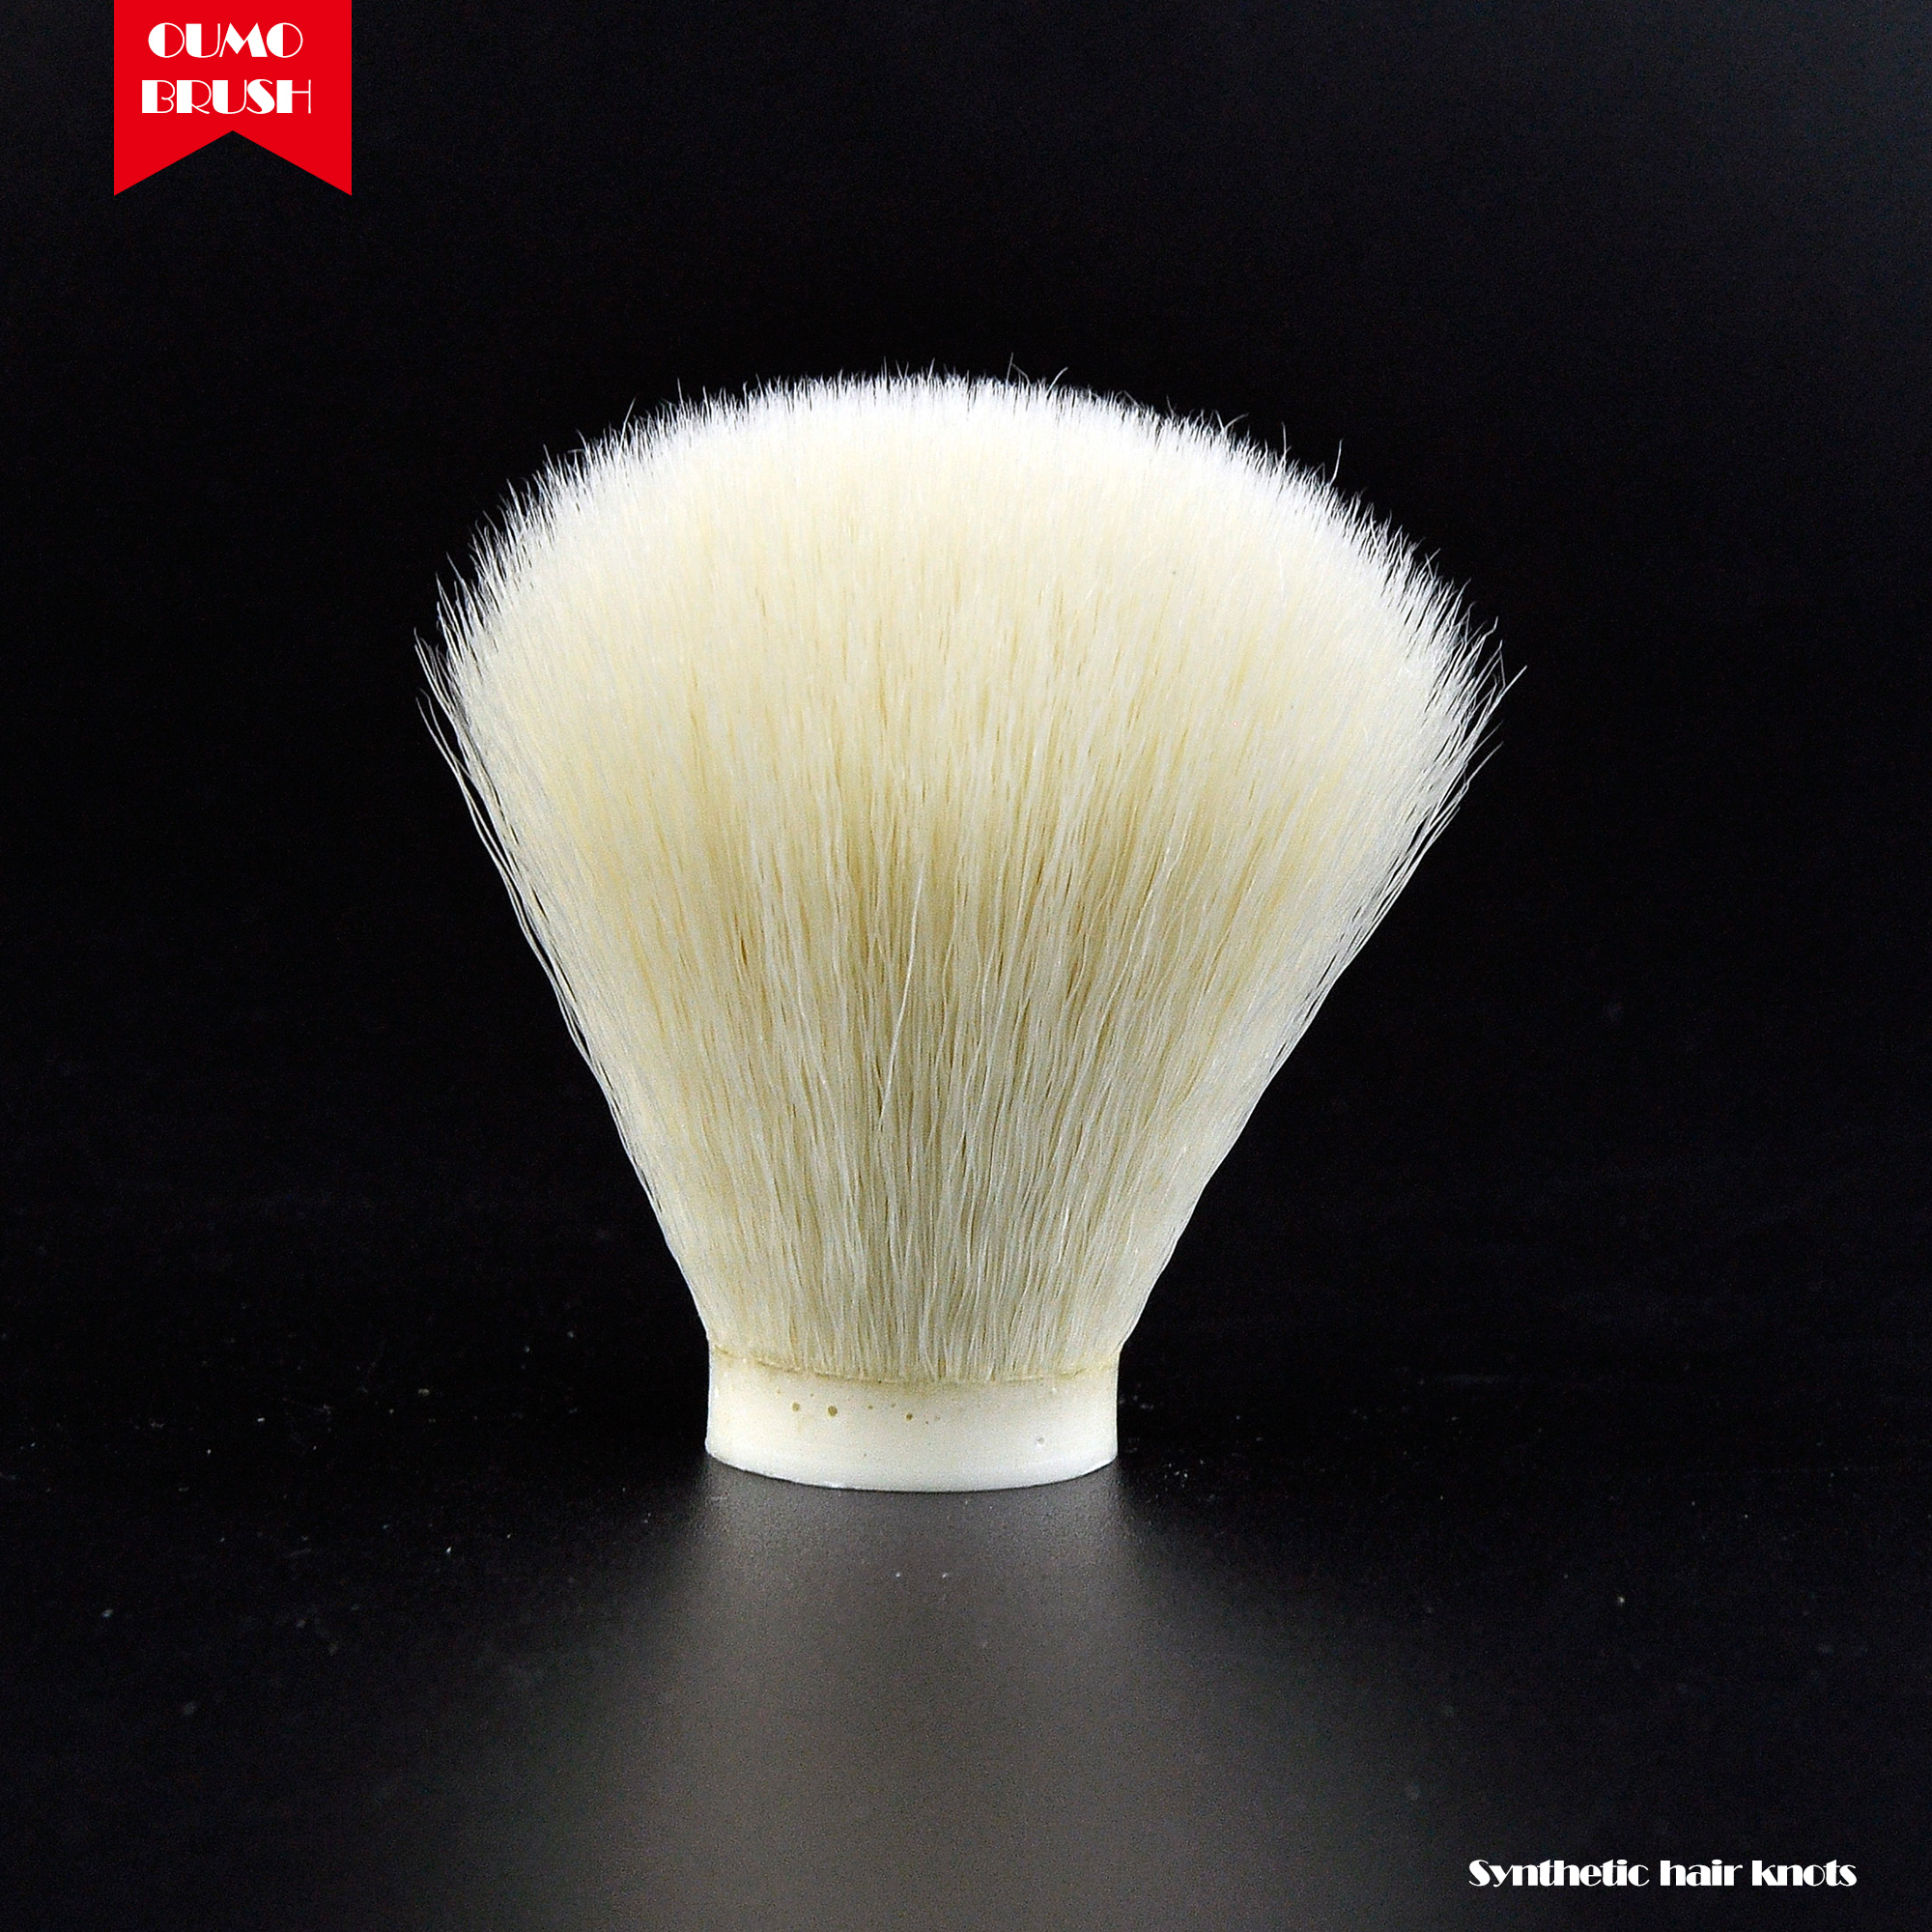 OUMO BRUSH-cream White Synthetic Hair Knot Shaving Brush Knots